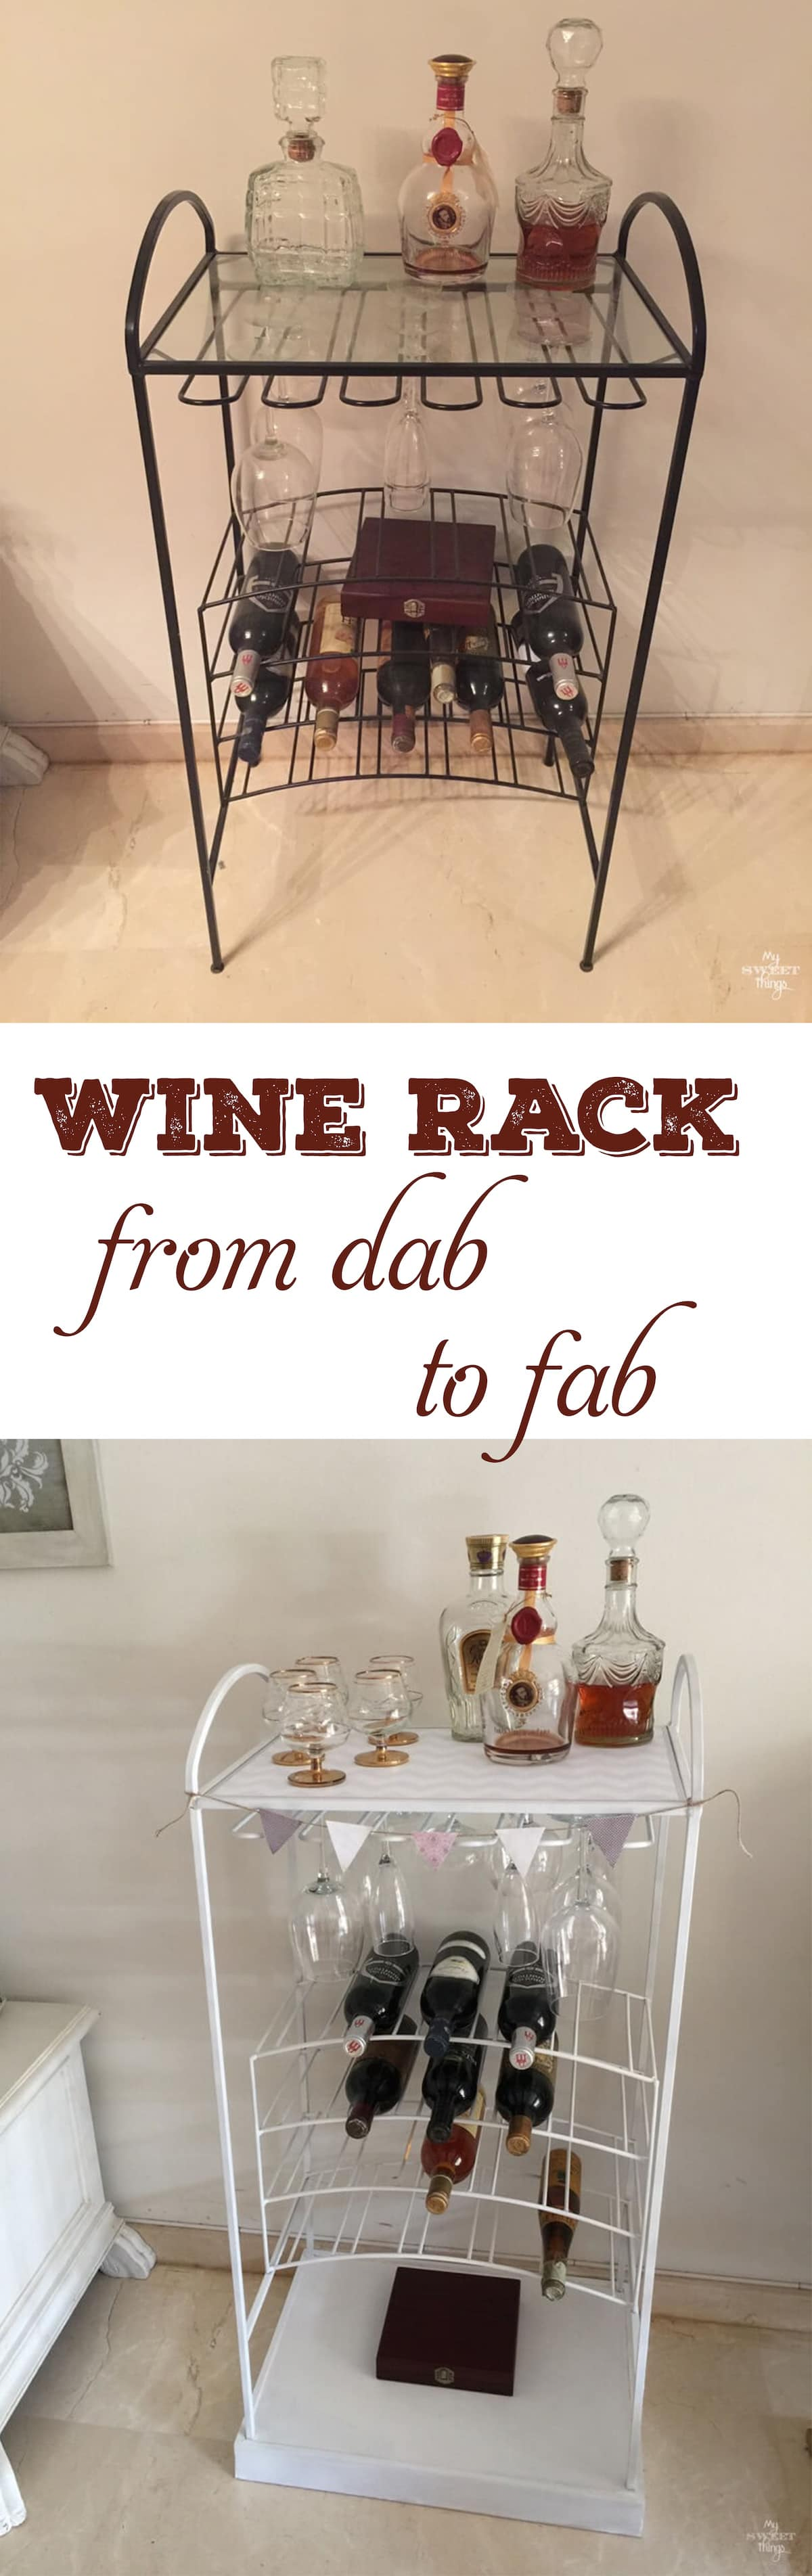 How this wine rack went from dab to fab